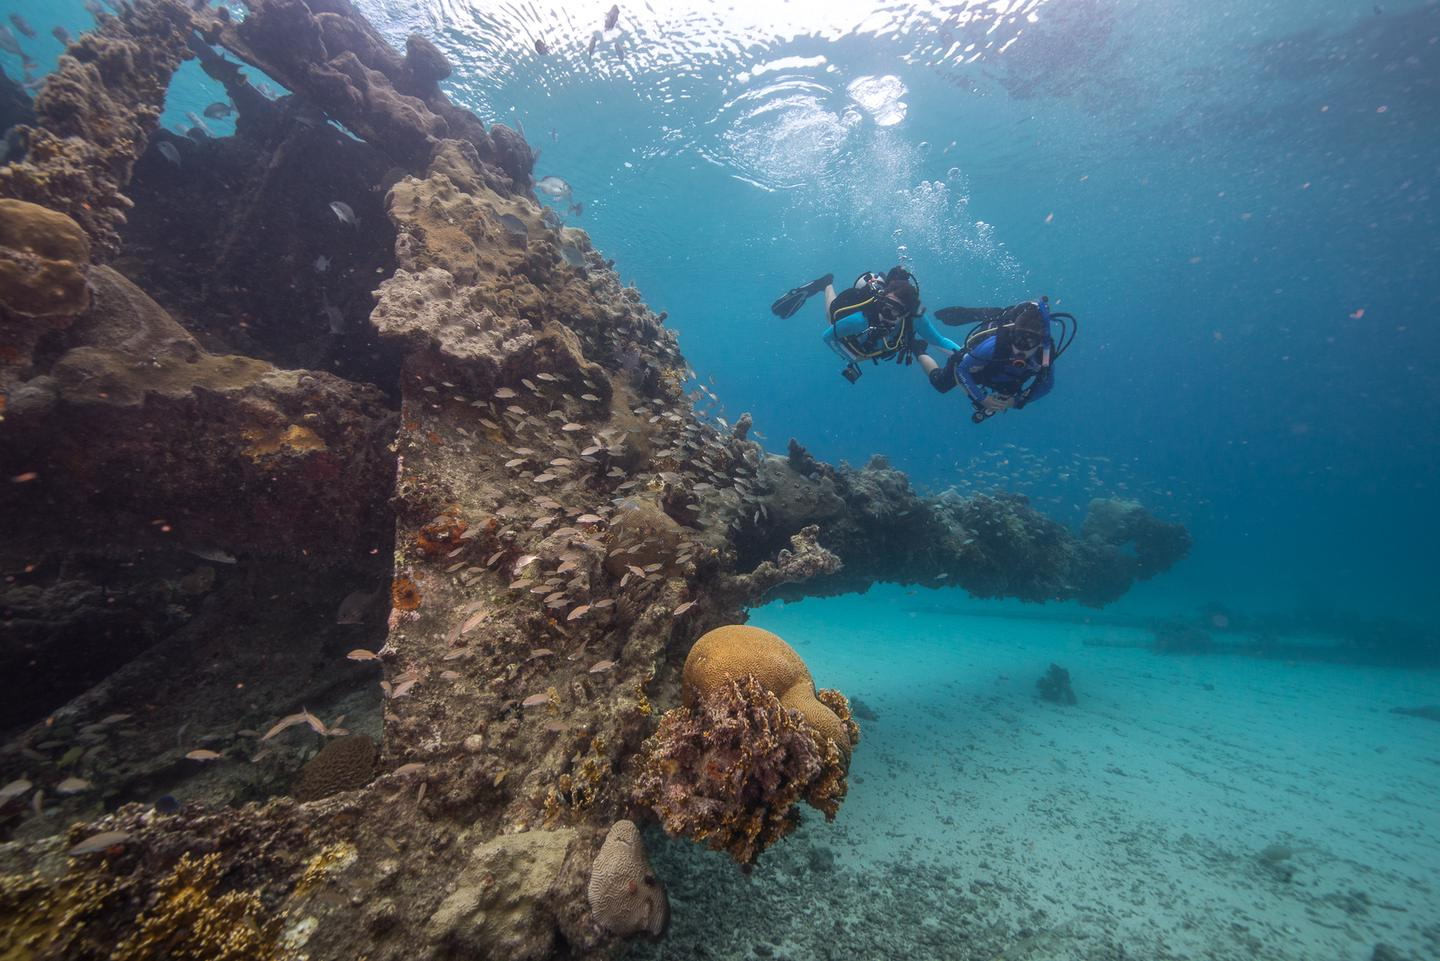 Diving at the Dry TortugasThe Dry Tortugas has over 300 sunken ships. One of the most accessible is the Winjammer Wreck which can be dove or snorkeled.